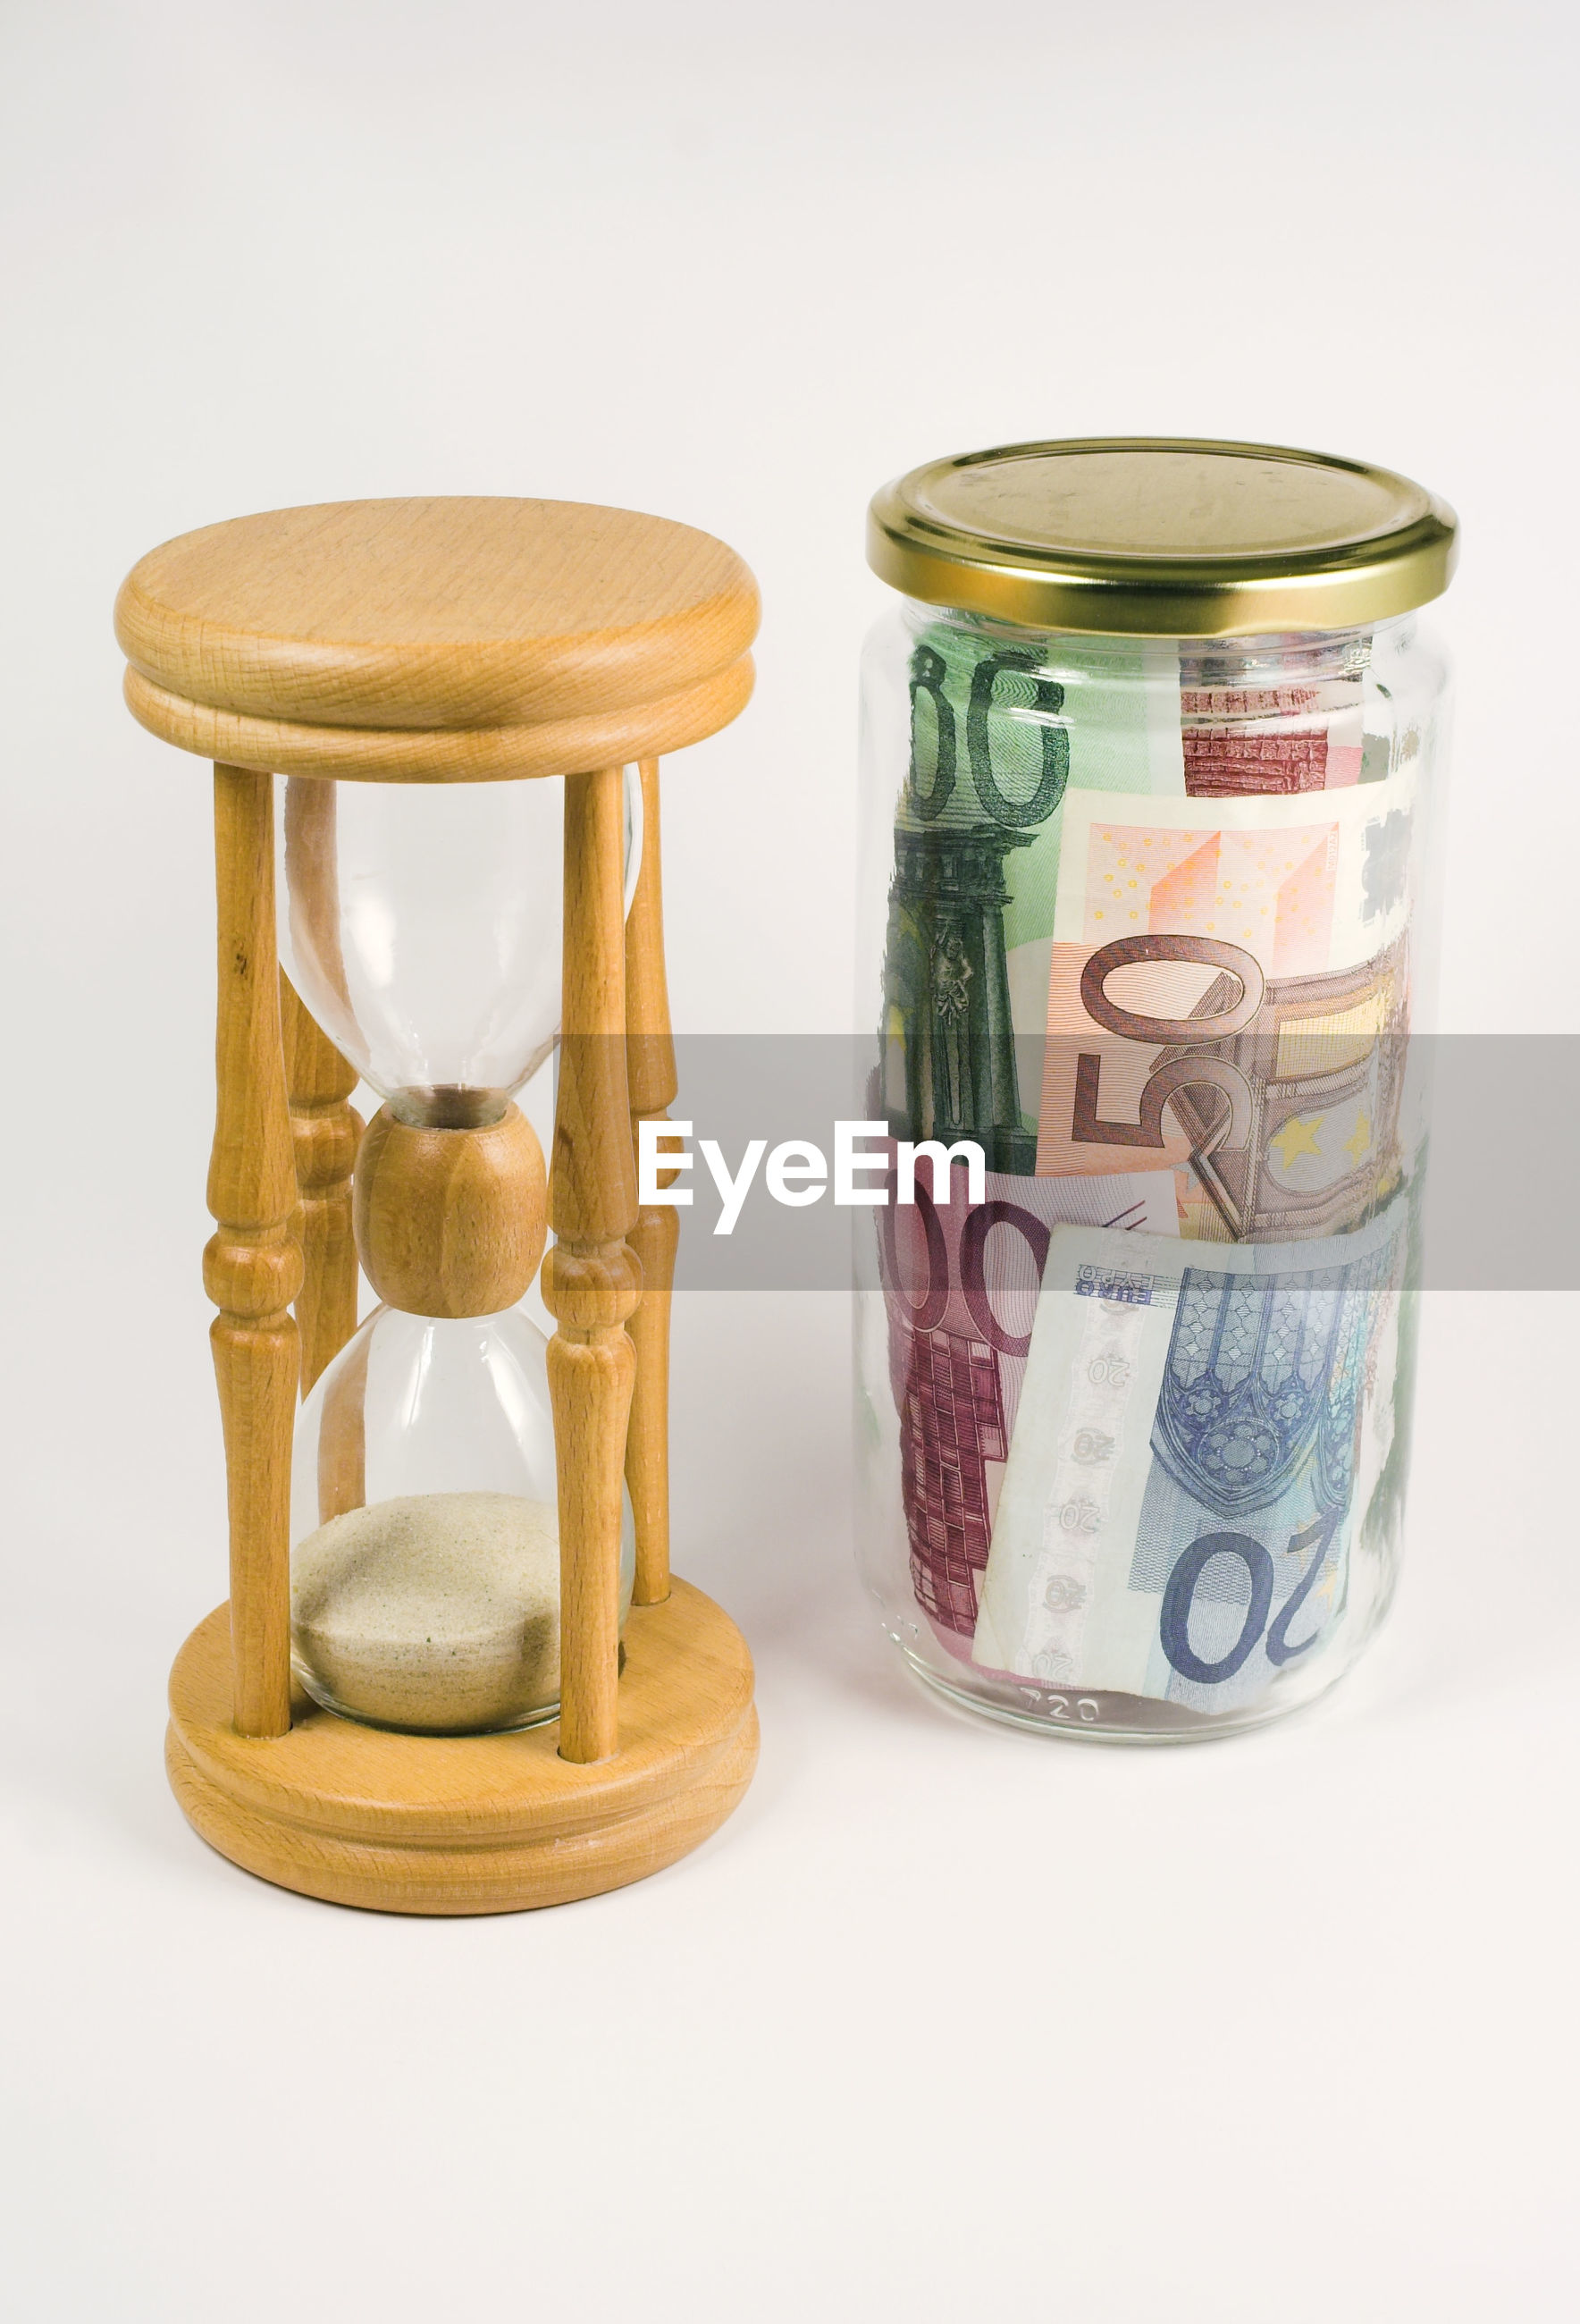 Paper currencies by hourglass in container on white background